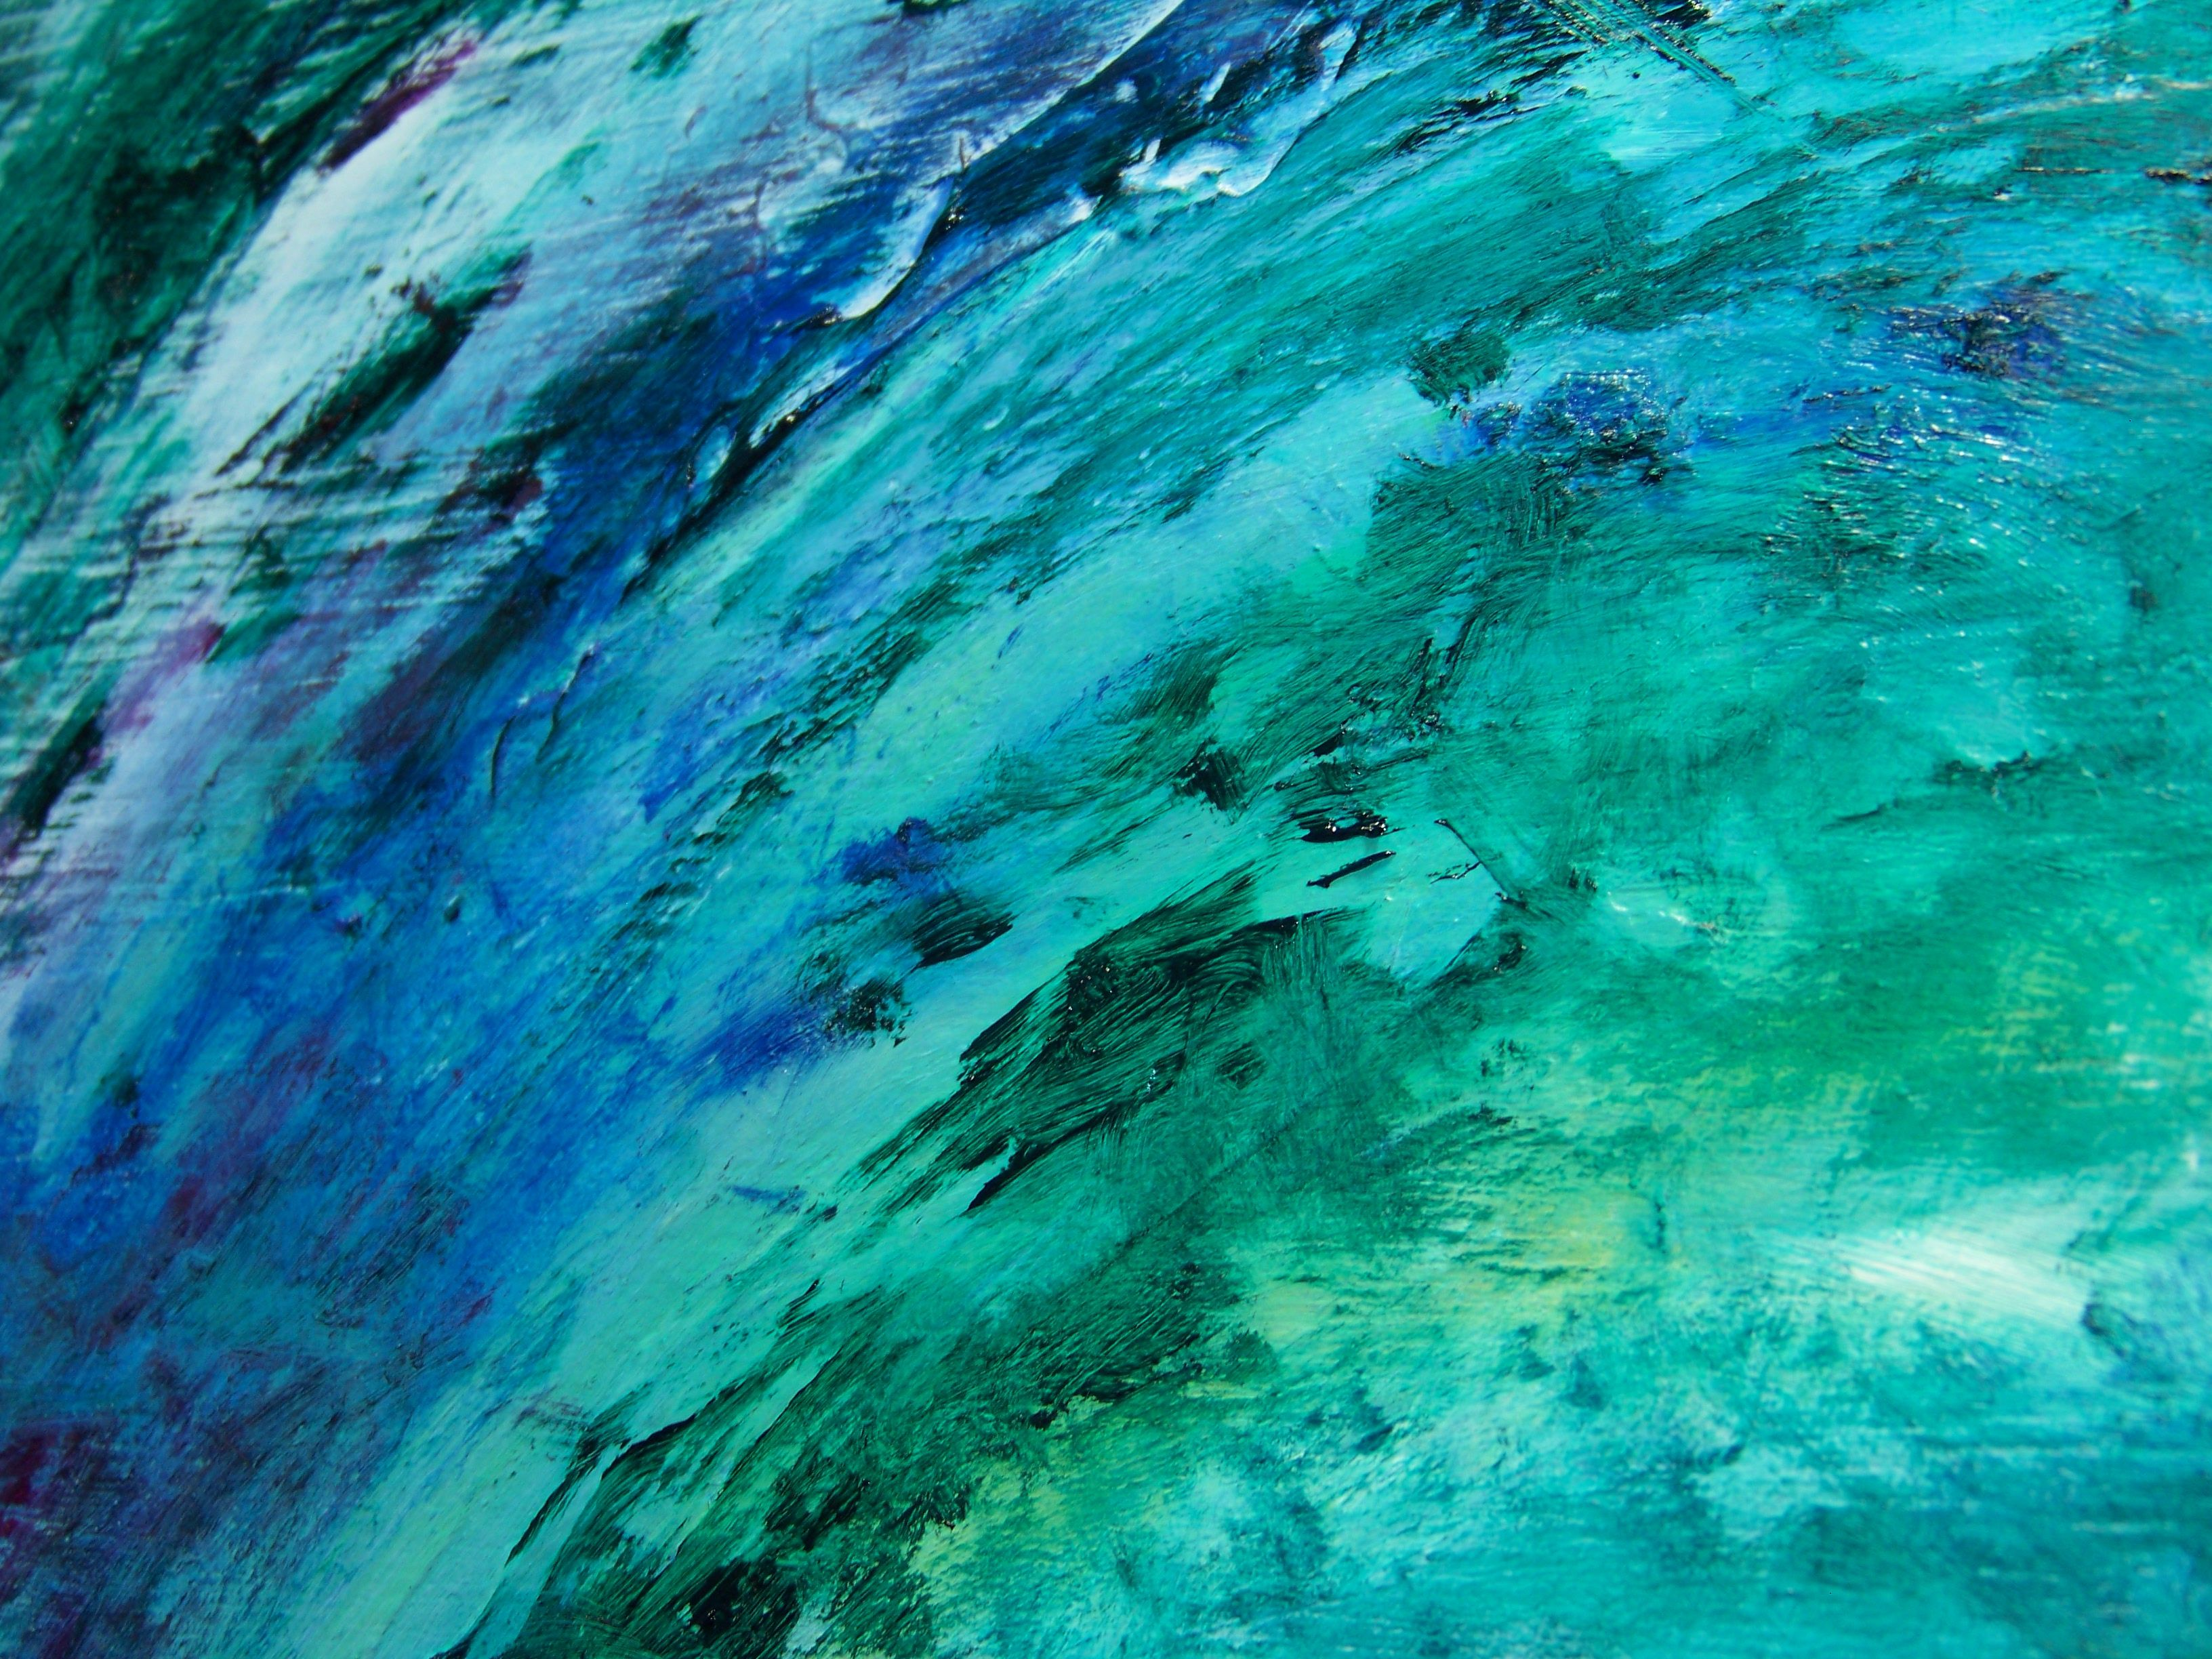 Painted abstract texture photo